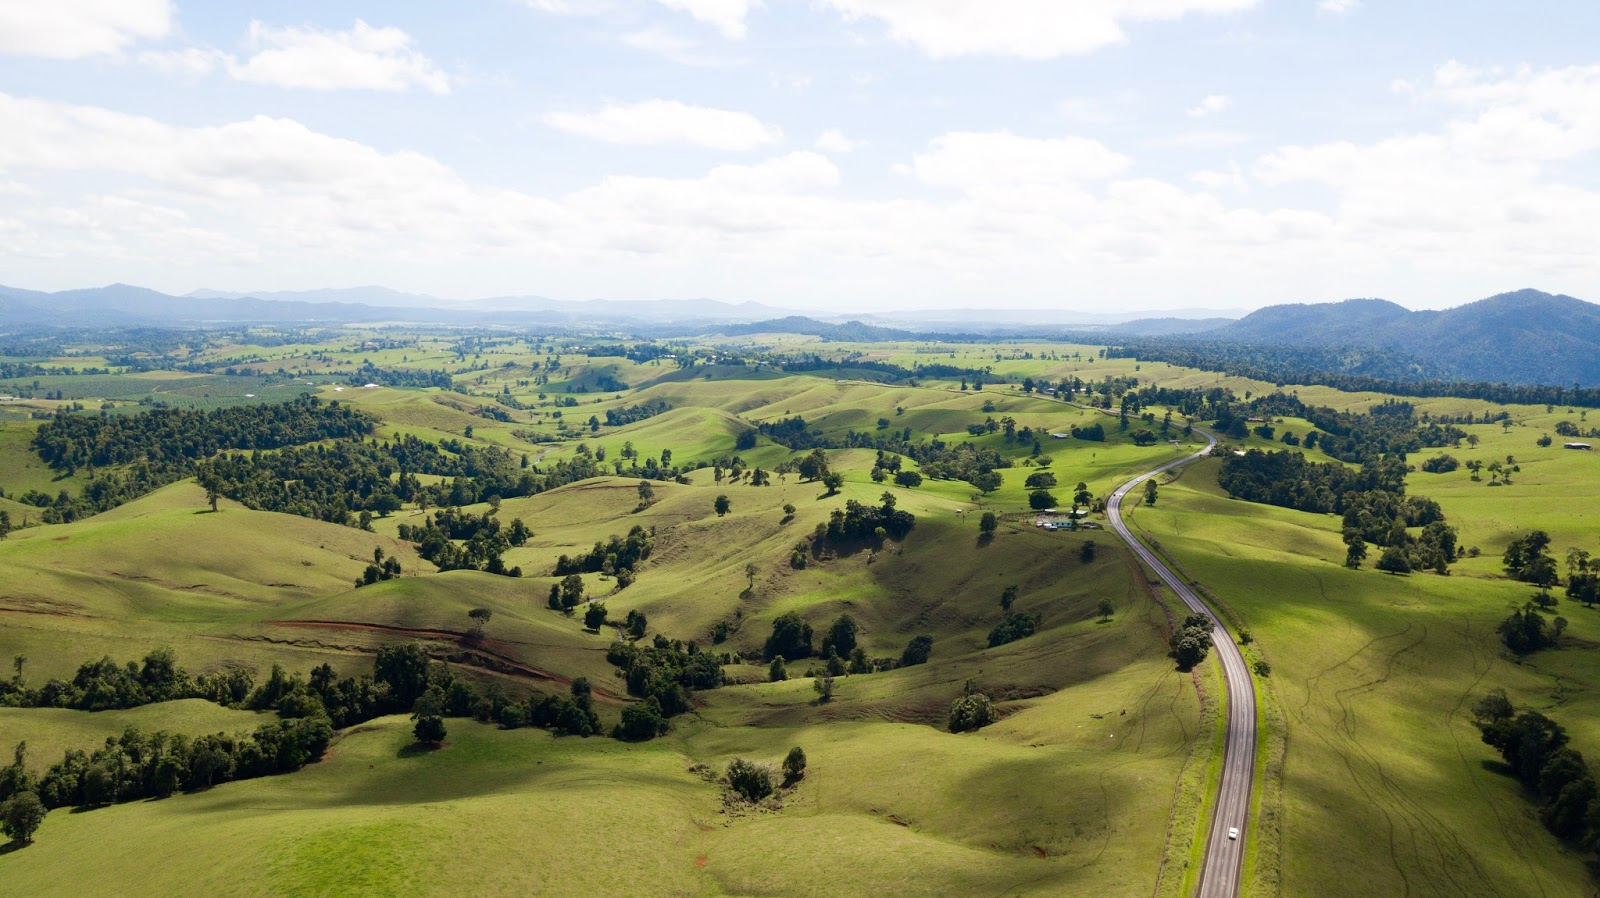 Exploring the atherton tablelands a make believe world for The atherton